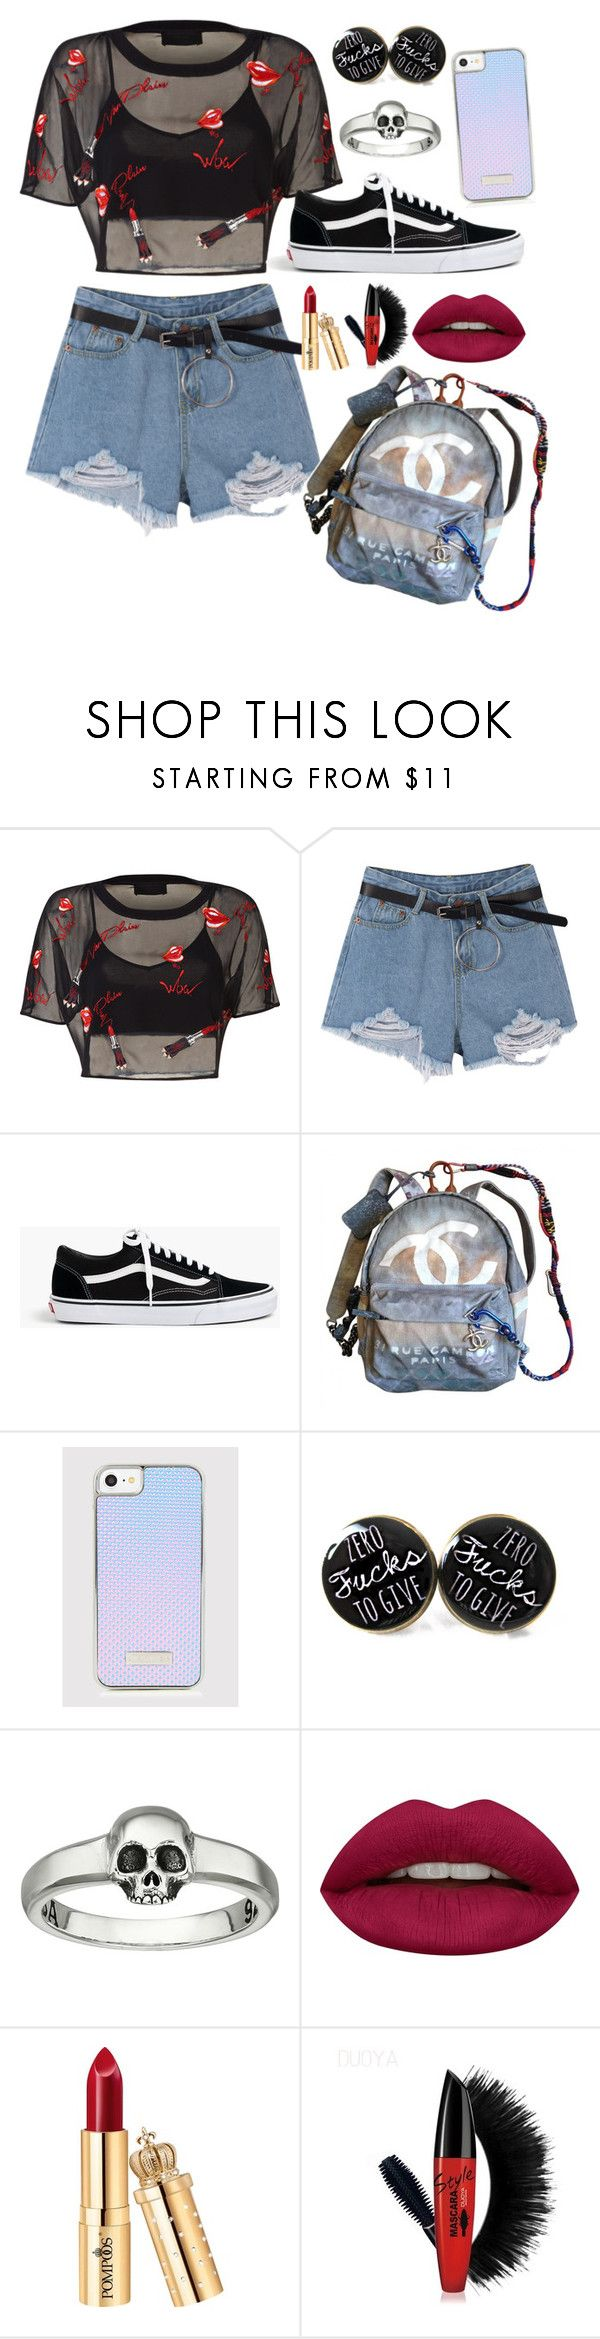 """Untitled #114"" by alexandrrraaa on Polyvore featuring J.Crew, Chanel, King Baby Studio and Huda Beauty"